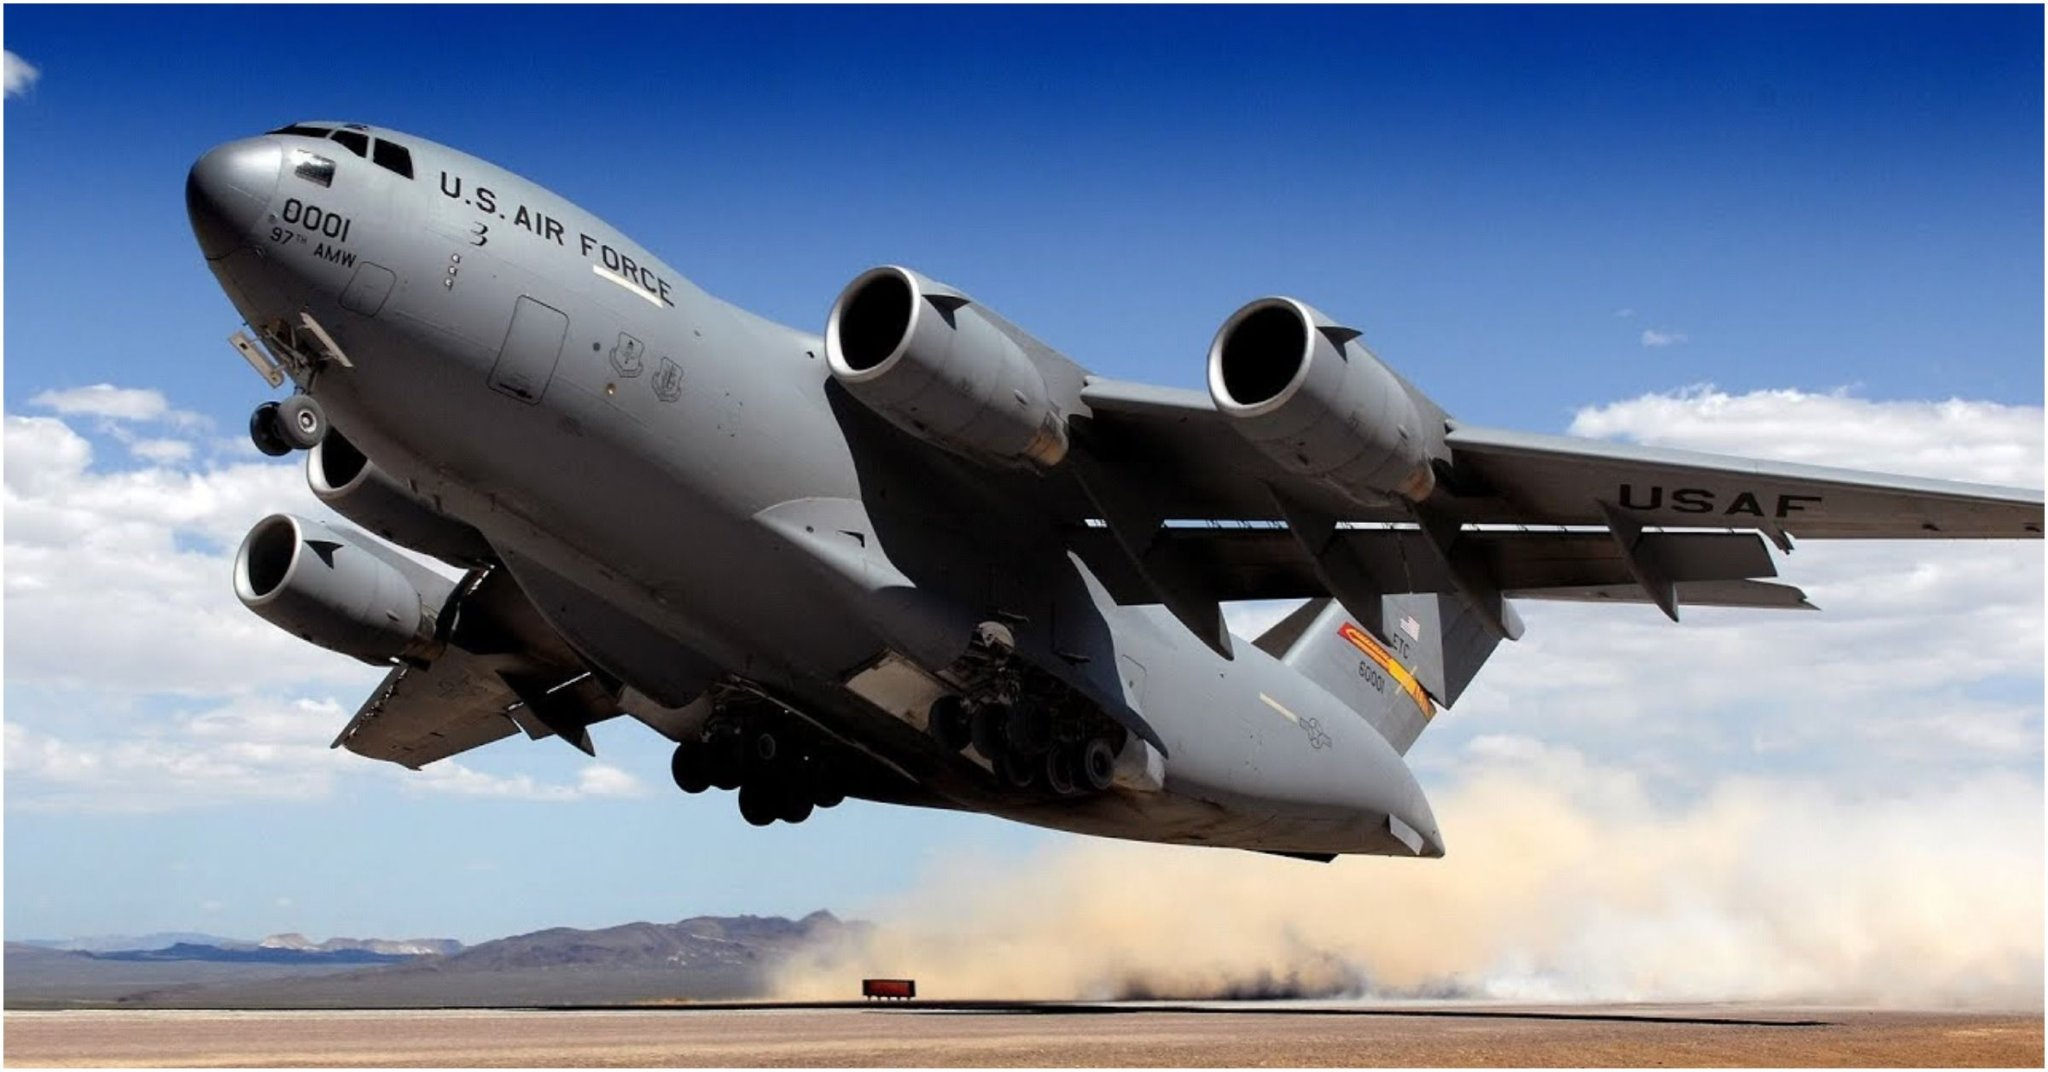 Sky Fortresses - 15 Biggest Aircraft Under US Airforce's Command